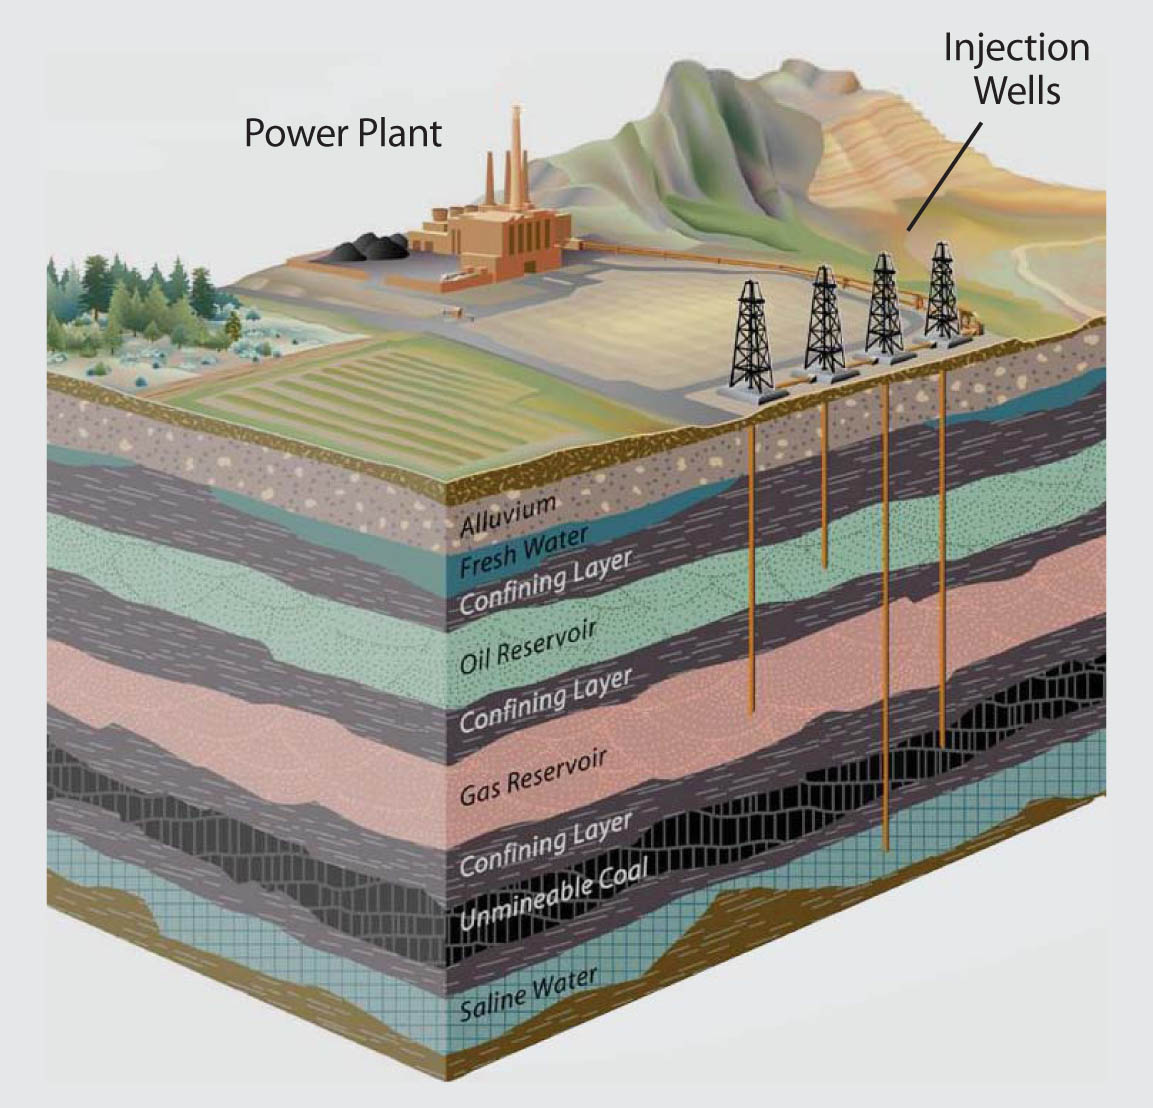 Schematic illustrating the process of carbon capture and storage (also known as sequestration).